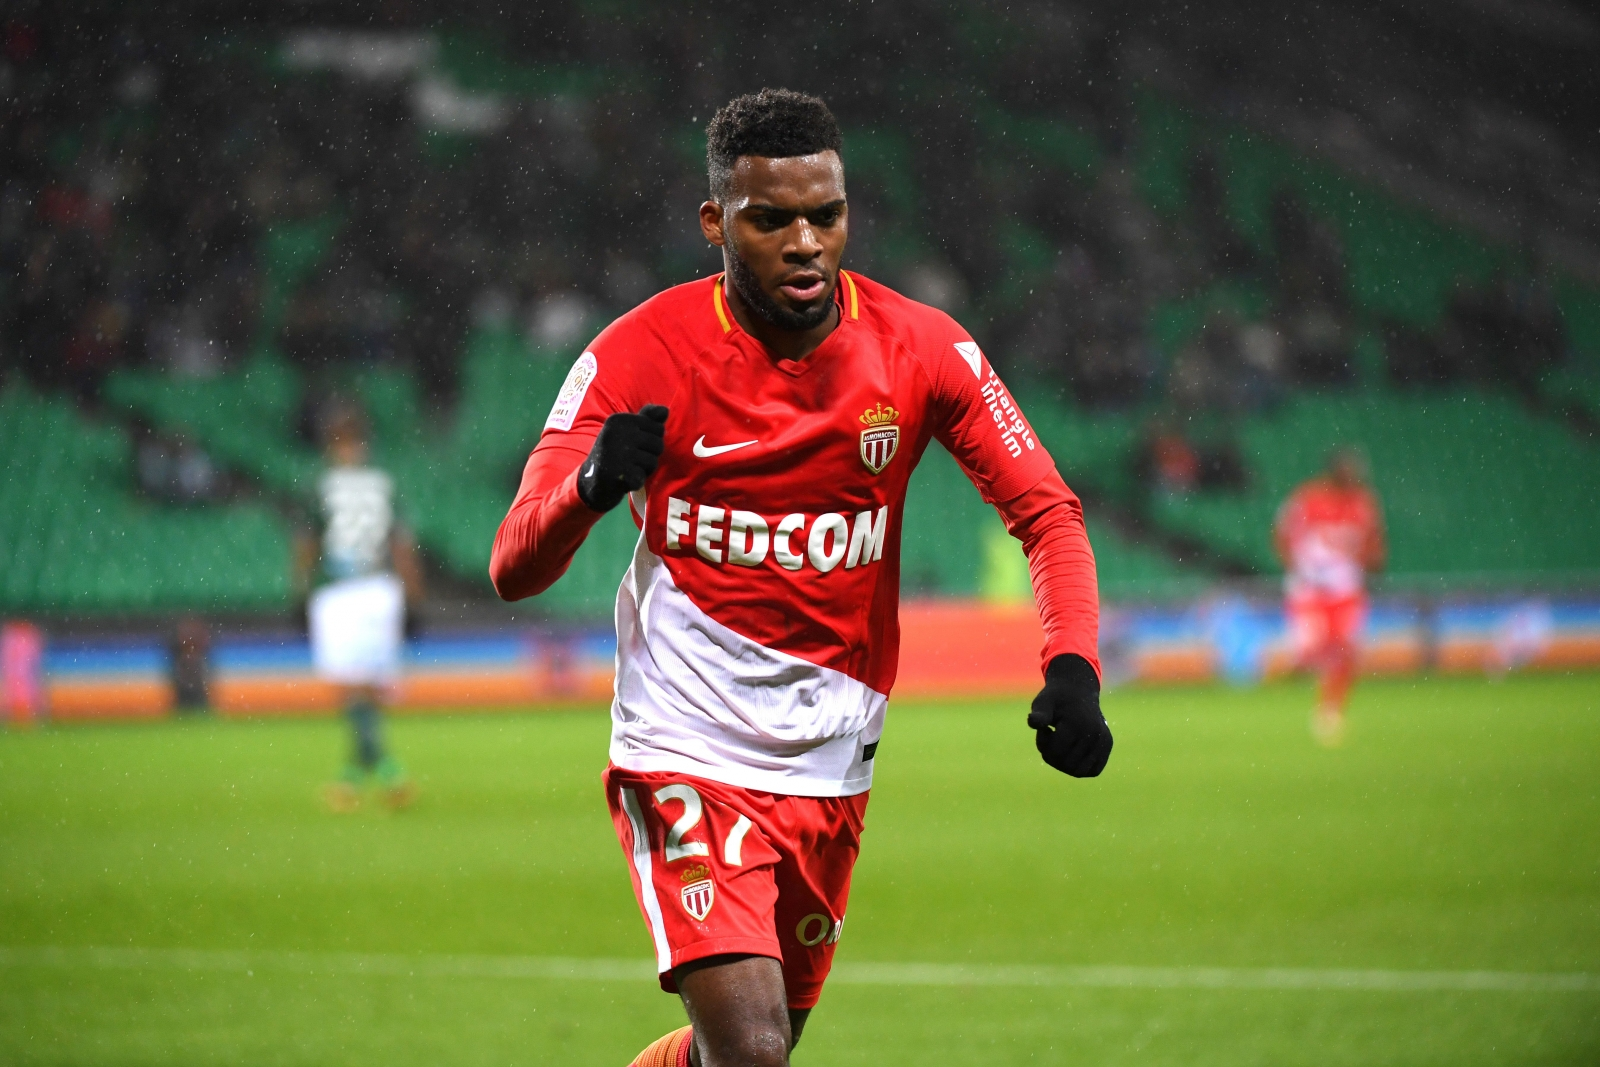 Monaco coach Leonardo Jardim hints at sale of Liverpool target Thomas Lemar